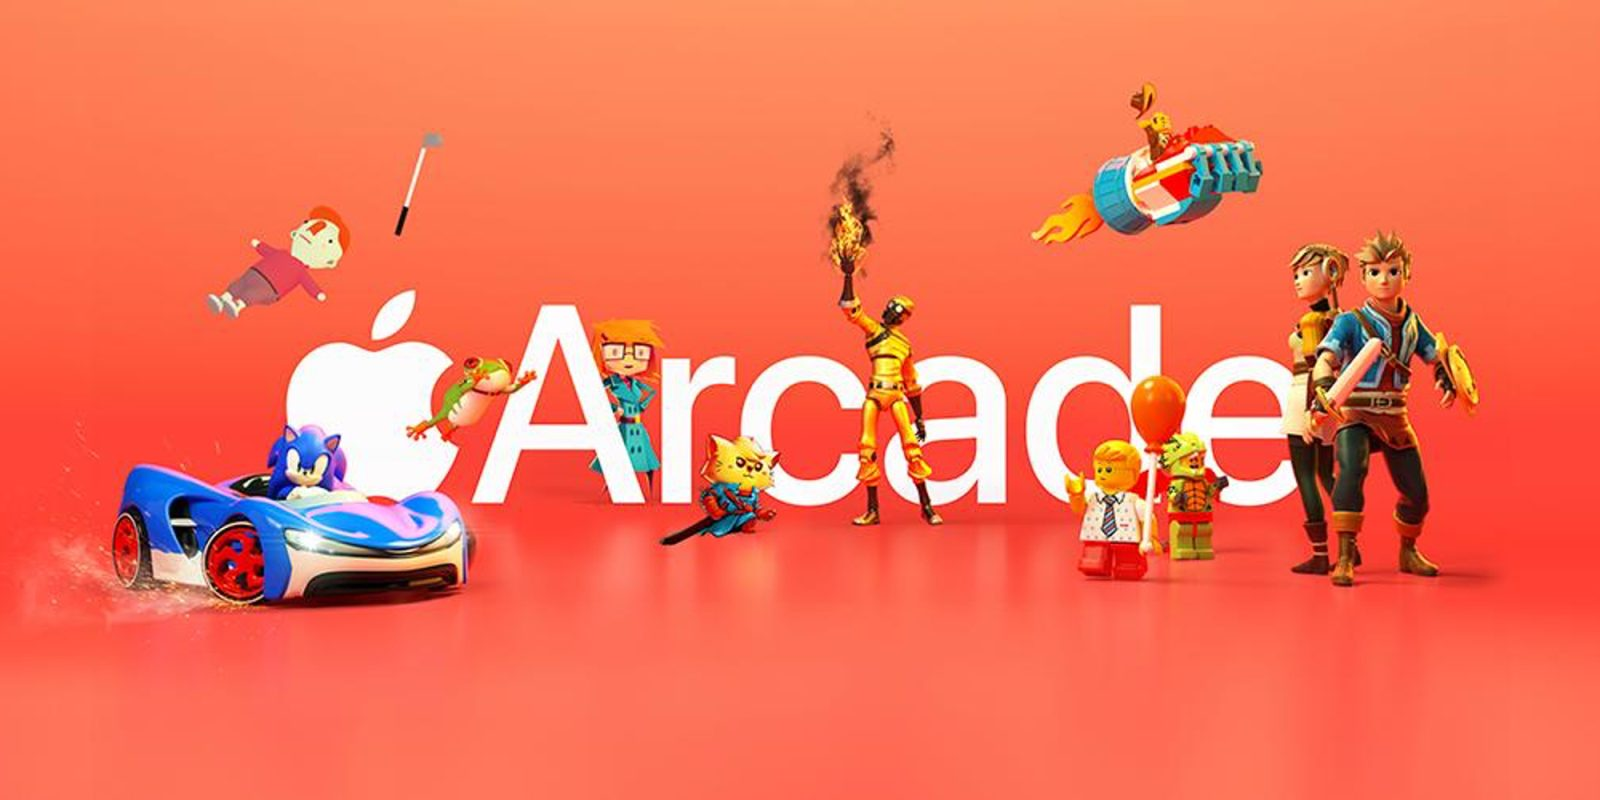 Apple Arcade review roundup: A 'really fun' and 'surprisingly excellent' experience for $5/month